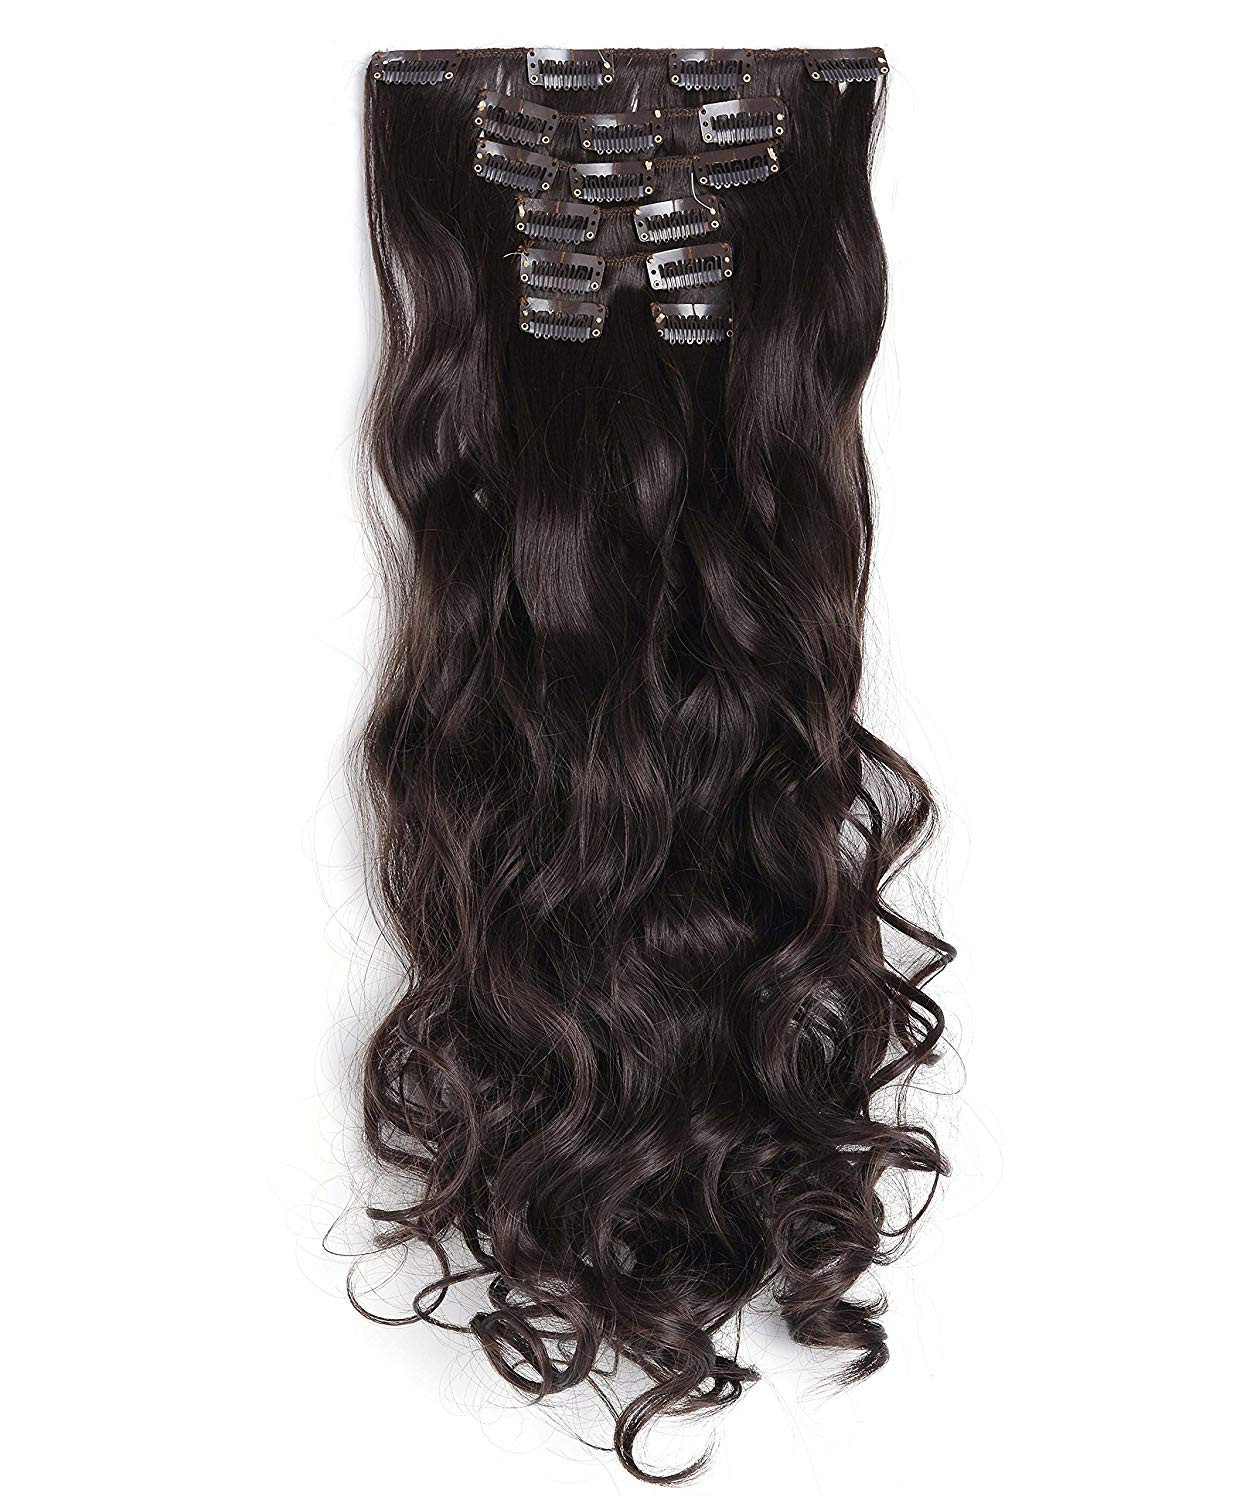 """OneDor® 20"""" Curly Full Head Clip in Synthetic Hair Extensions 7pcs 140g (6-Medium Chestnut Brown)"""